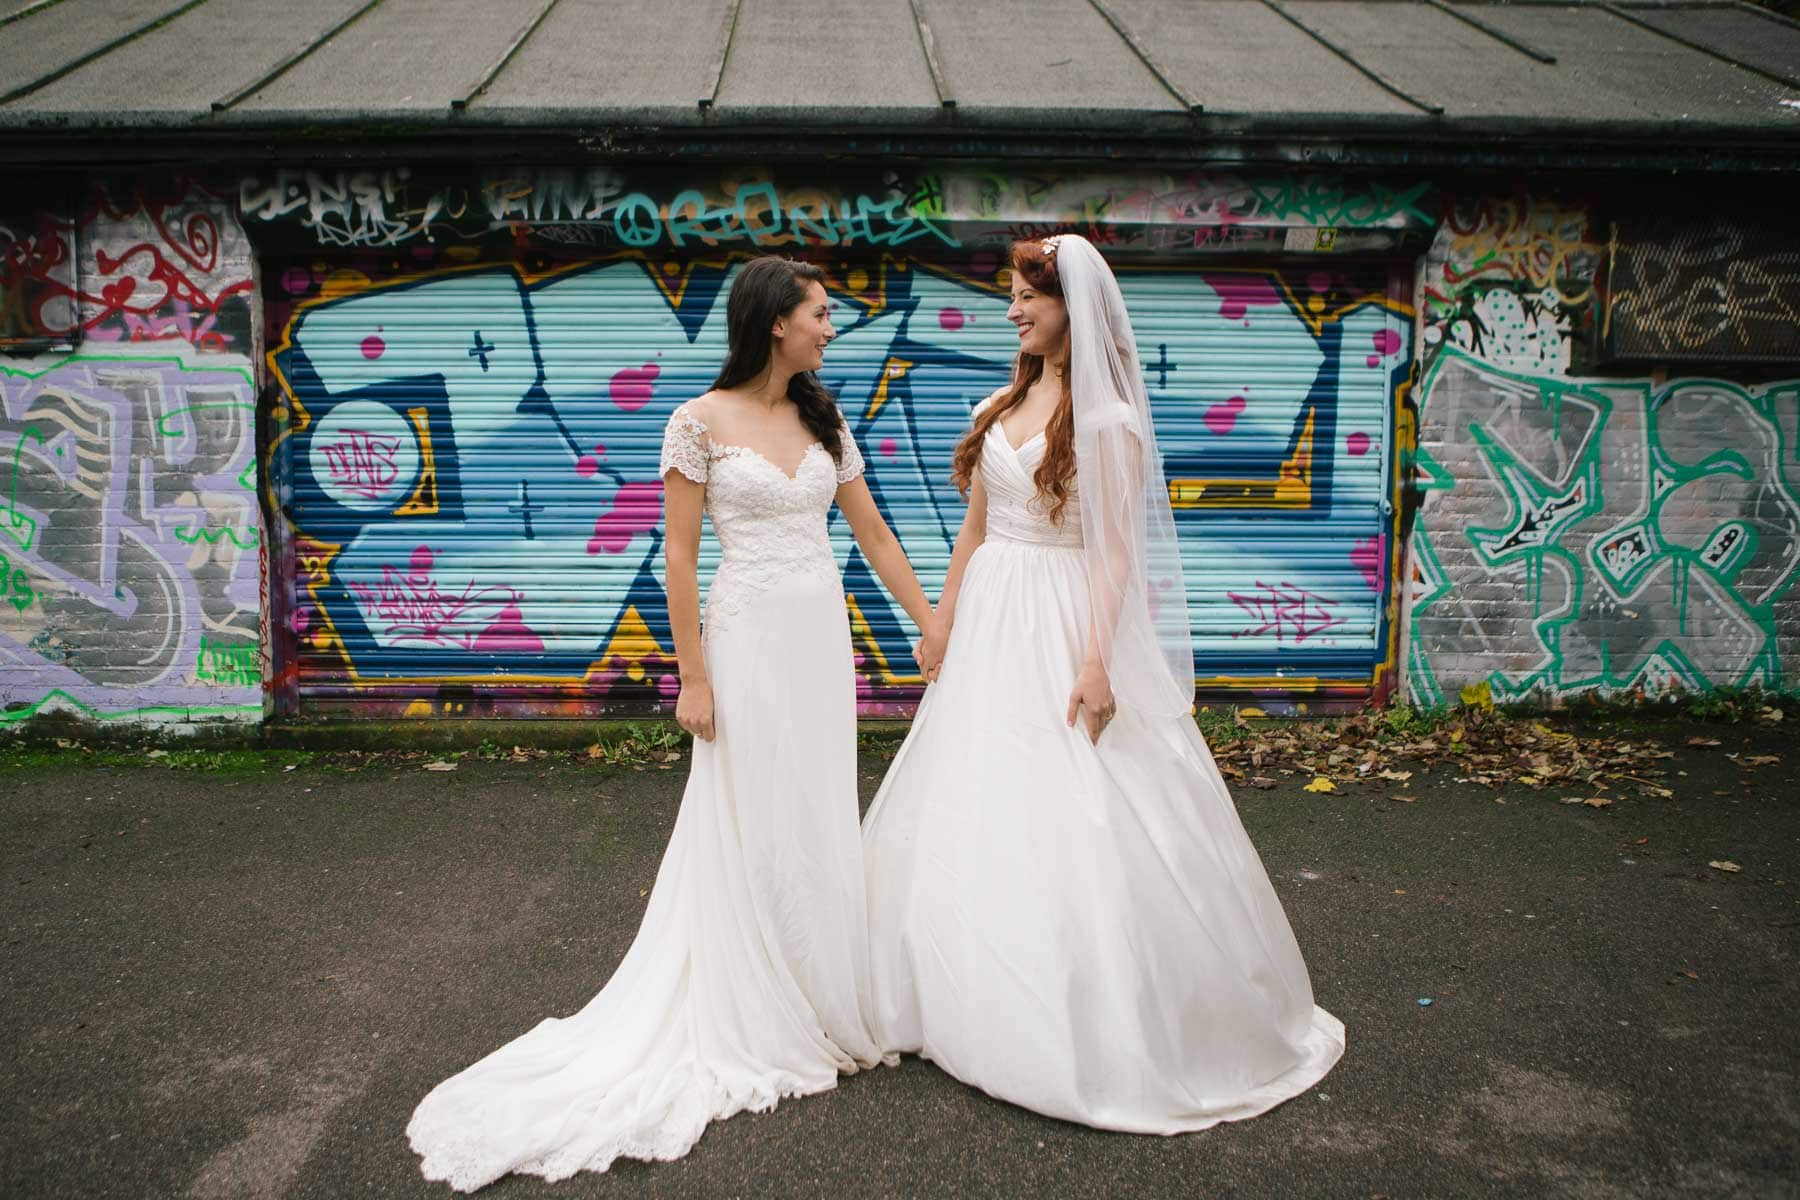 Bridal portrait of Jessica and Claudia standing in front of colourful Brighton street art. Jessica wears a 50s style Lou Lou Bridal dress, and Claudia wears a bespoke gown from White Leaf Bridal